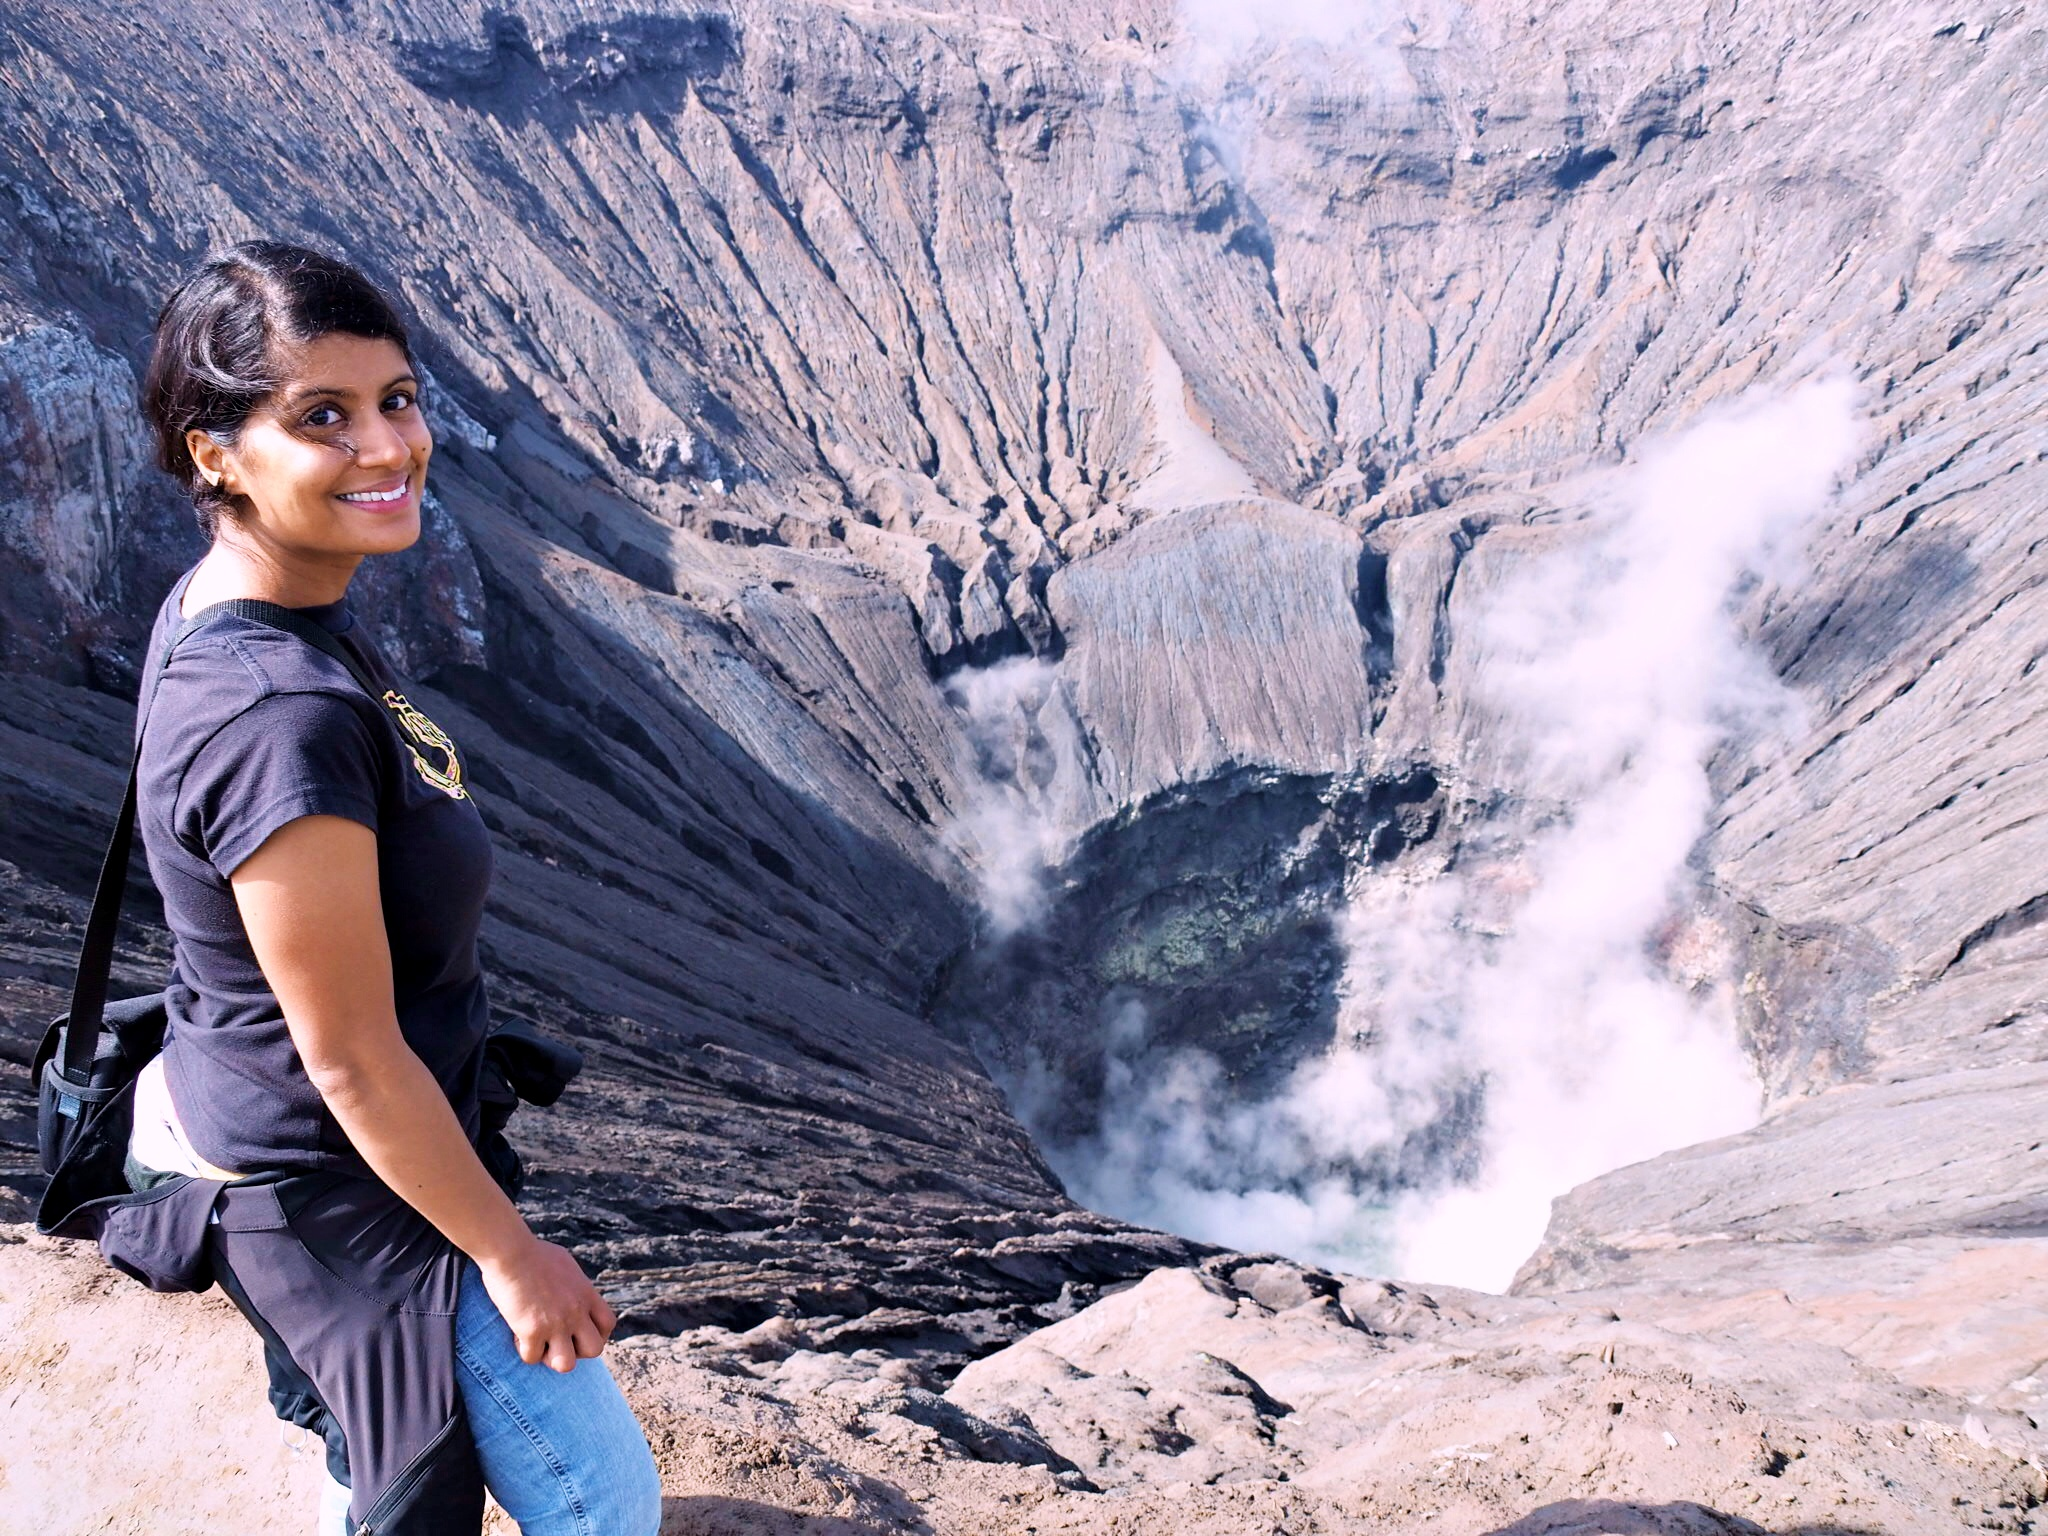 At Mount Bromo: the hike starting at 3am was well worth it.